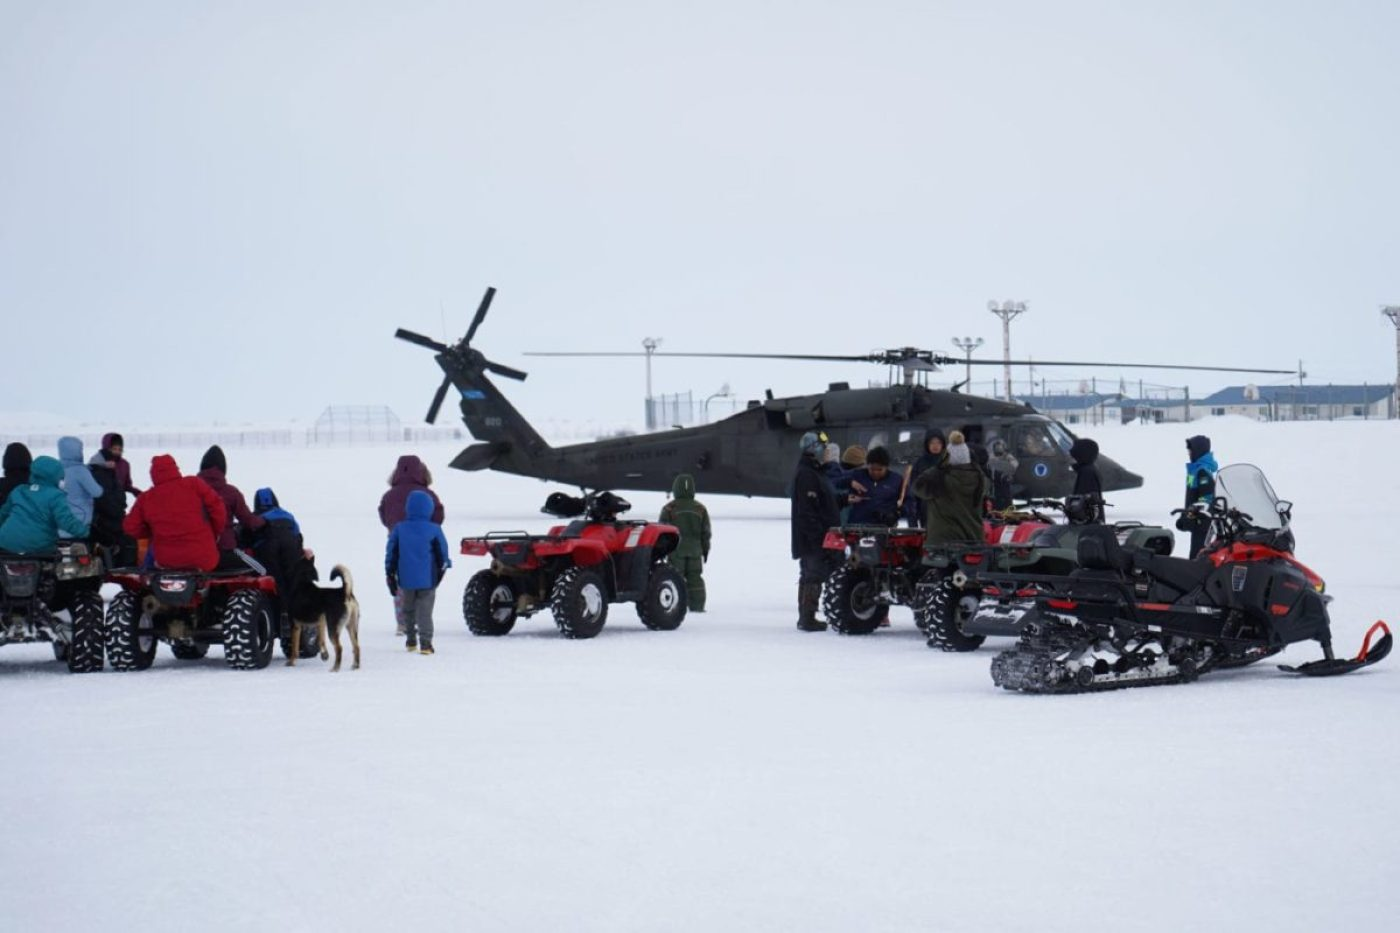 Community members of the city of Chevak, watch from a safe distance as representatives from the Alaska Department of Military and Veterans Affairs, the Department of Environmental Conservation and the Department of Commerce, Community and Economic Development load onto an Alaska Army National Guard UH-60 Black Hawk helicopter in Chevak, Alaska, April 9, 2021. Members of the Alaska Department of Military and Veterans Affairs, the Department of Environmental Conservation and the Department of Commerce, Community and Economic Development traveled to western Alaska April 7-9 to meet with tribal leaders and citizens in Bethel, Tuluksak and Chevak to discuss disaster assistance measures and processes in light of recent emergencies that have occurred in the region, and in preparation for the upcoming flood season. (U.S. Army National Guard photo by Dana Rosso)